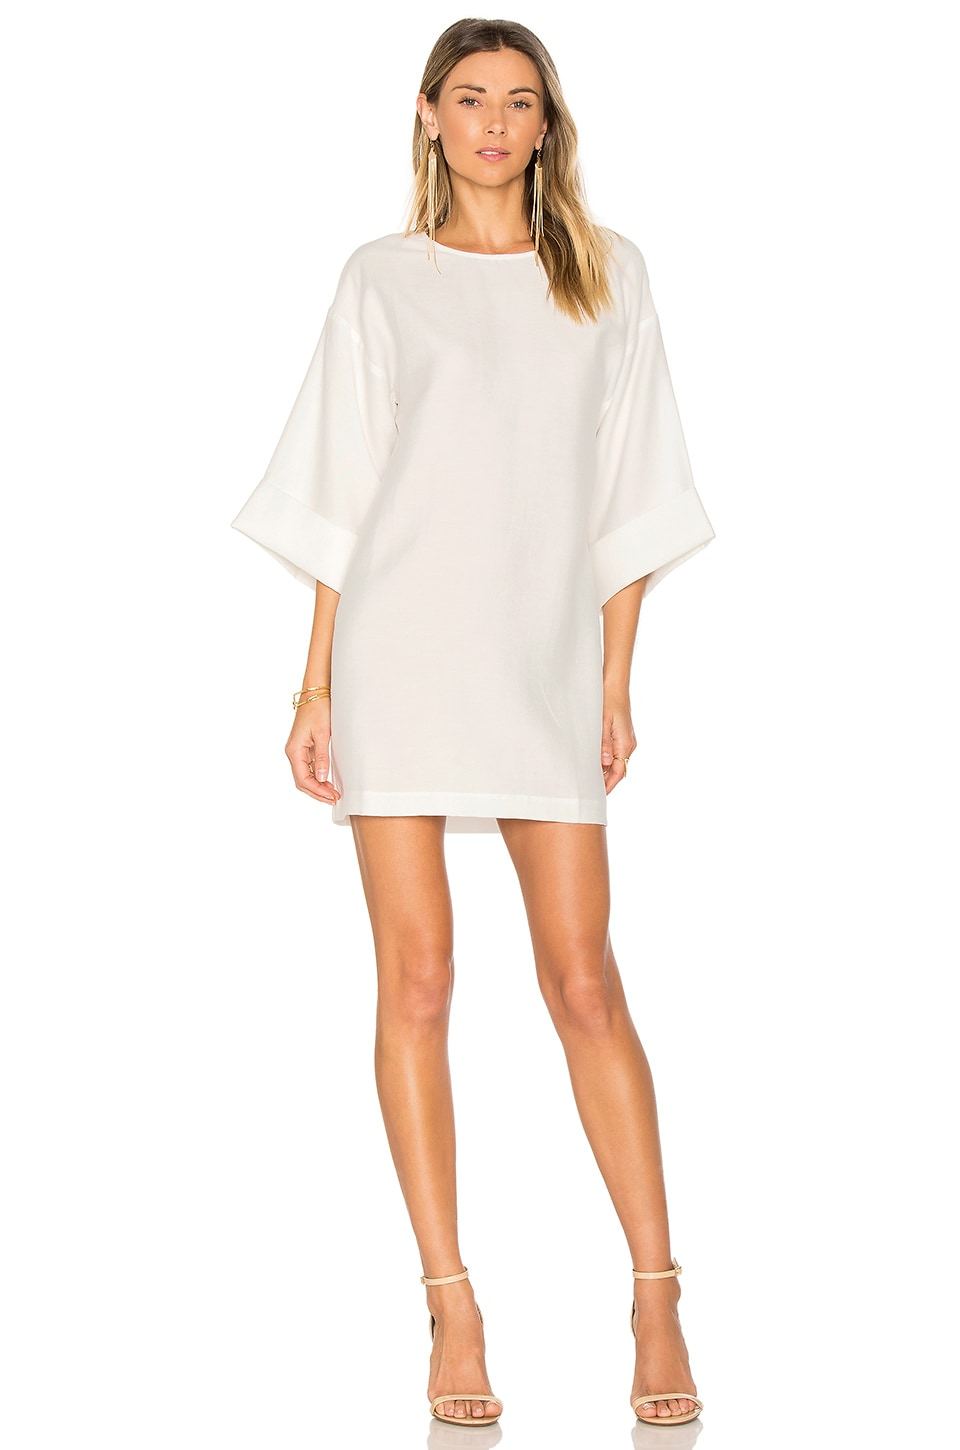 BEC&BRIDGE White Rock Dress in Ivory